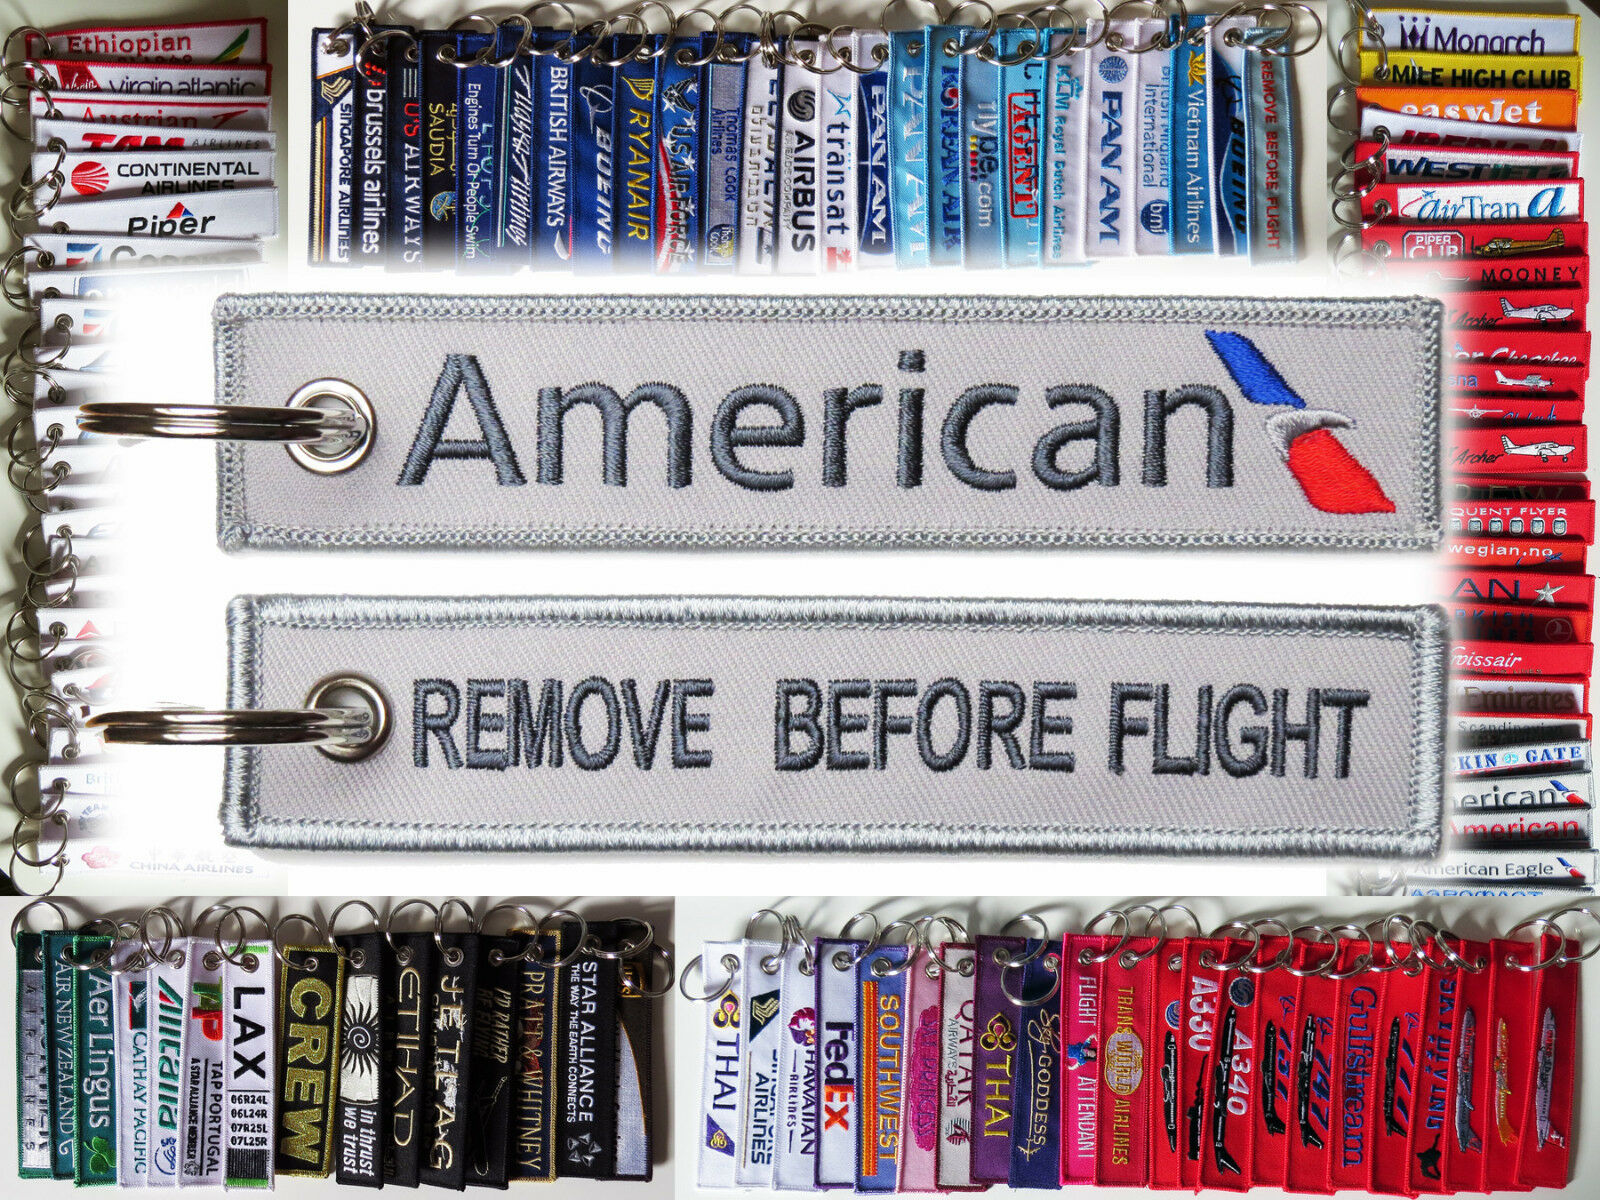 Keyring AIR NORTH Airlines Yukon/'s Airline Remove Before Flight tag keychain